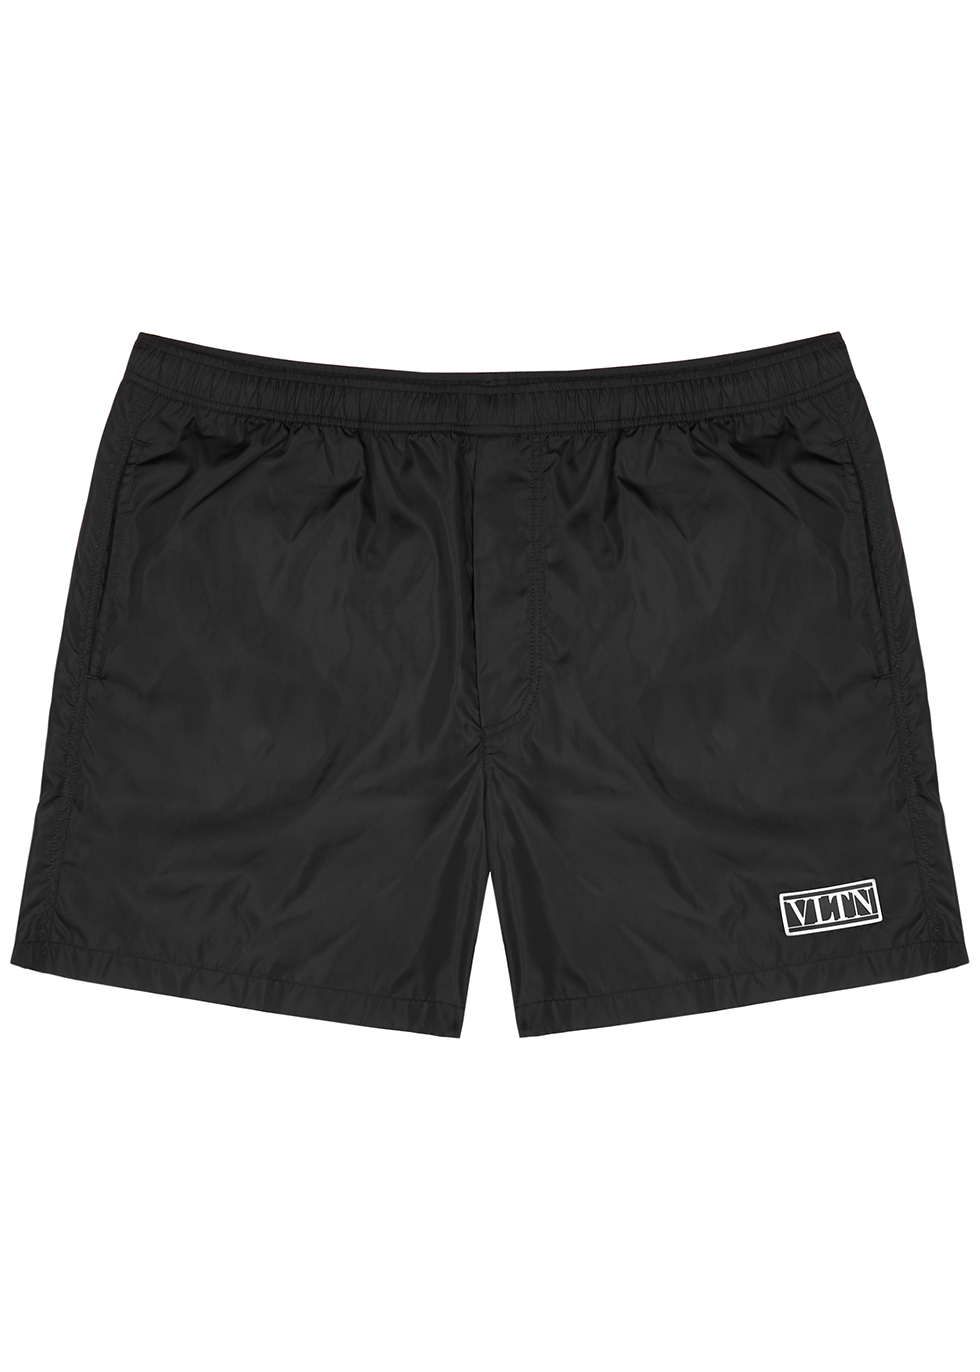 VLTN black shell swim shorts